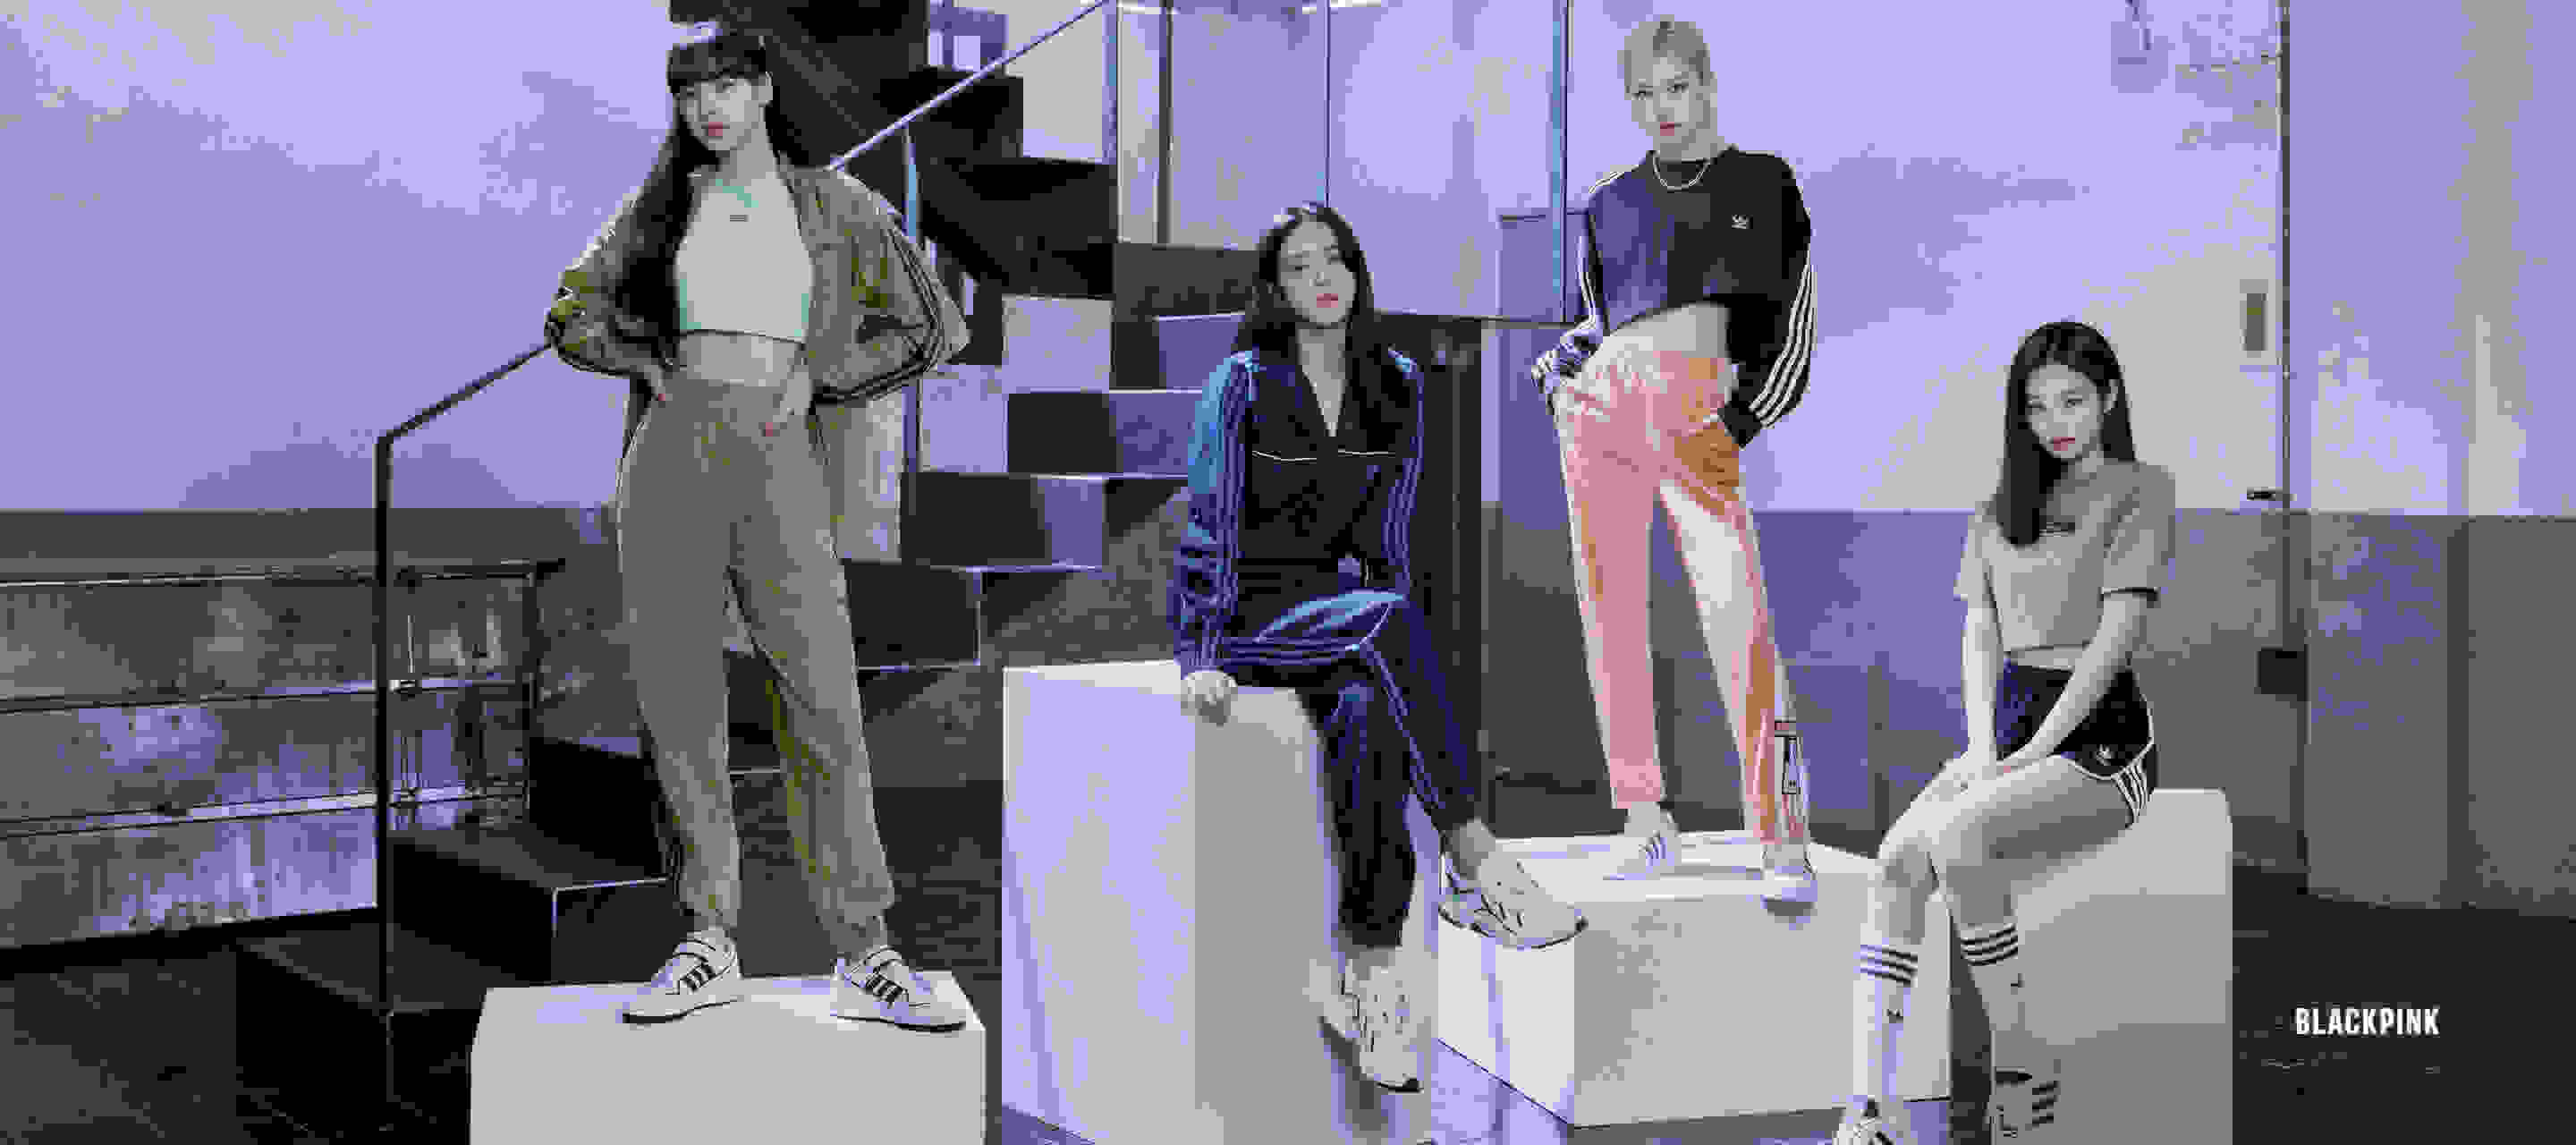 The four members of Blackpink are ready to make moves